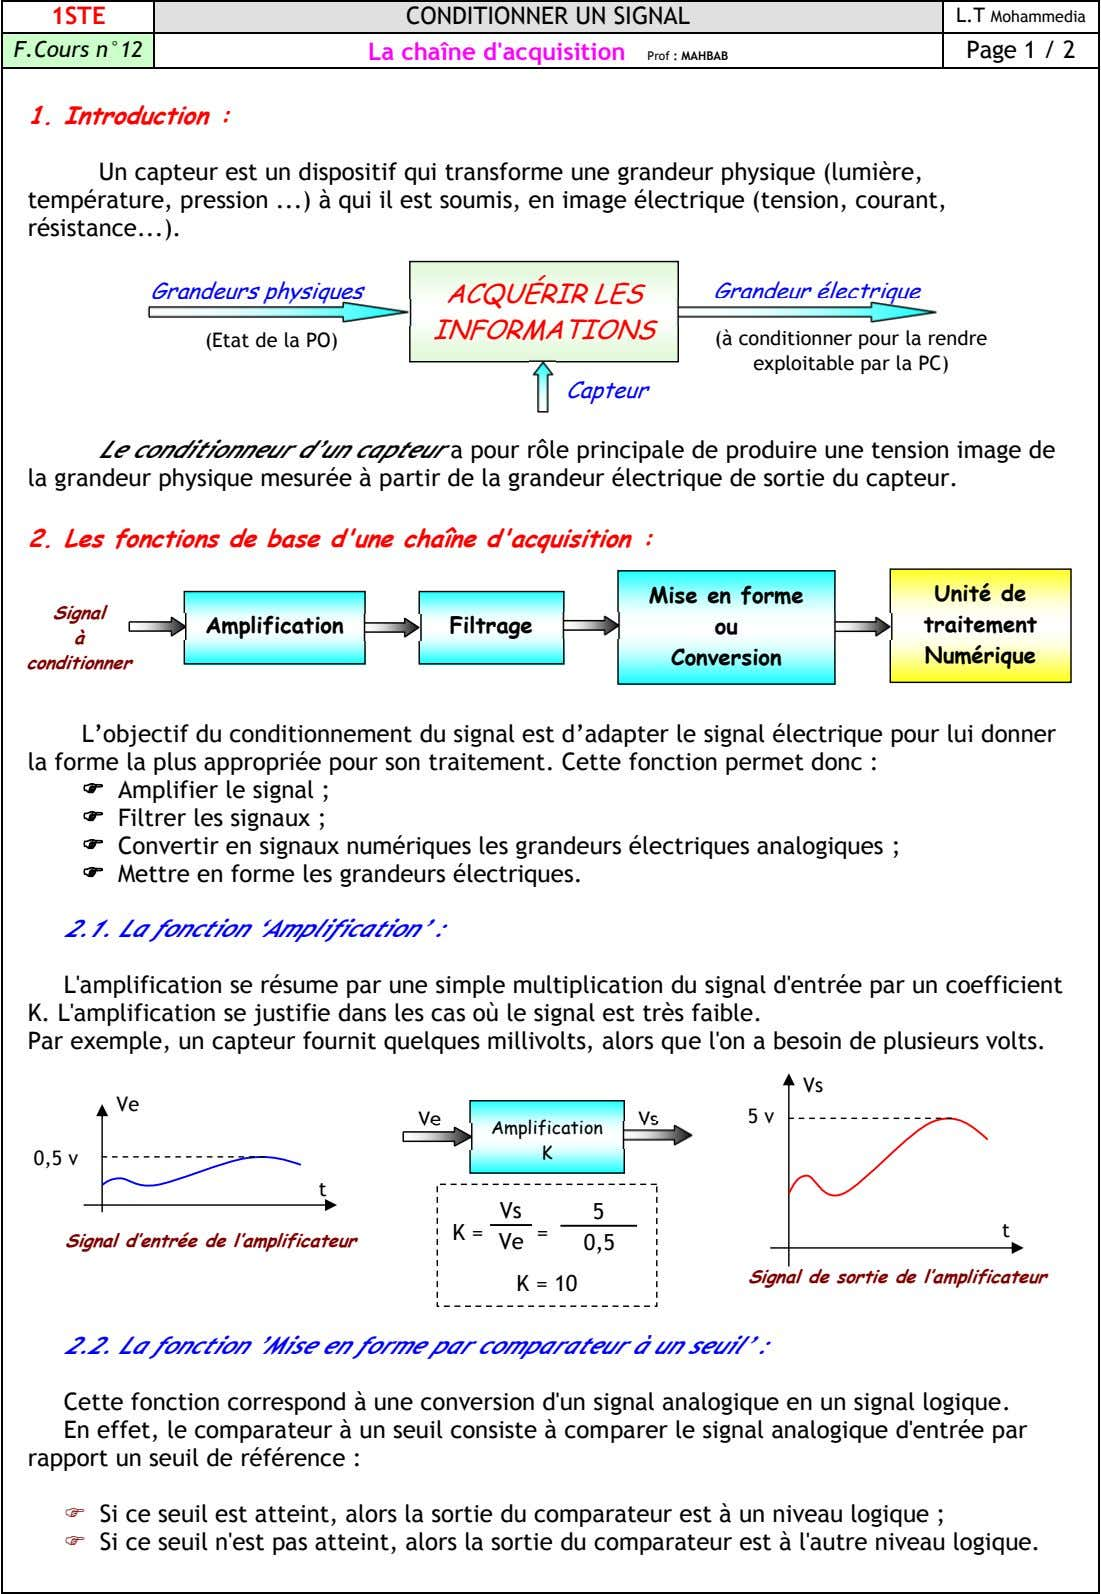 1STE CONDITIONNER UN SIGNAL L.T Mohammedia F.Cours n°12 La chaîne d'acquisition Page 1 / 2